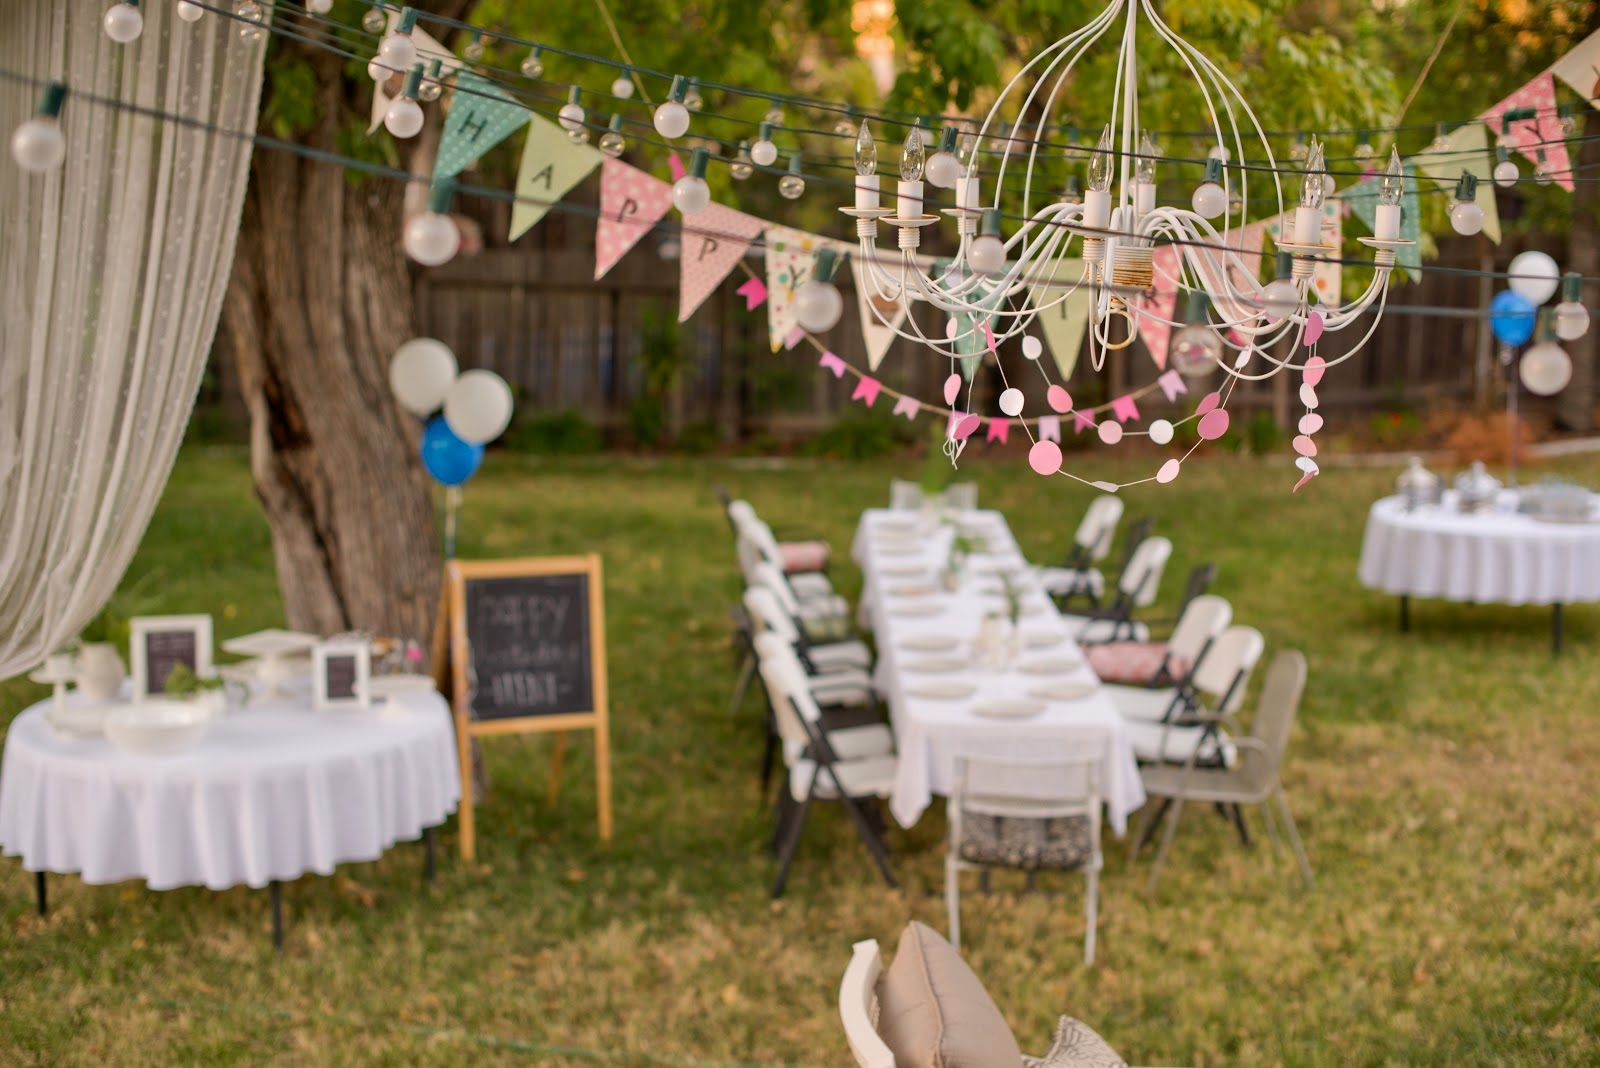 Outdoor Party Decor For Adults Gembloongdecor Outdoor pertaining to 11 Clever Designs of How to Makeover Backyard Birthday Decorations